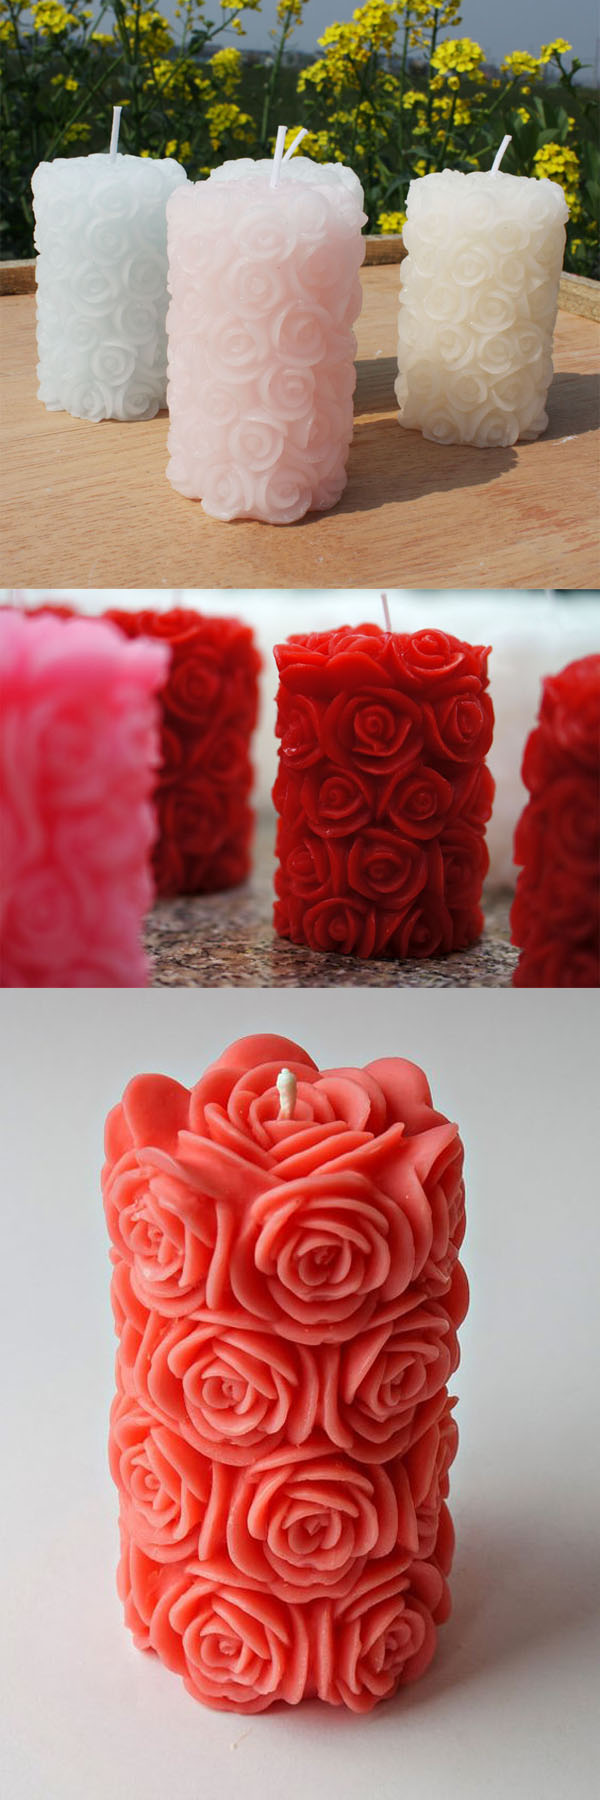 rose flower designed candles